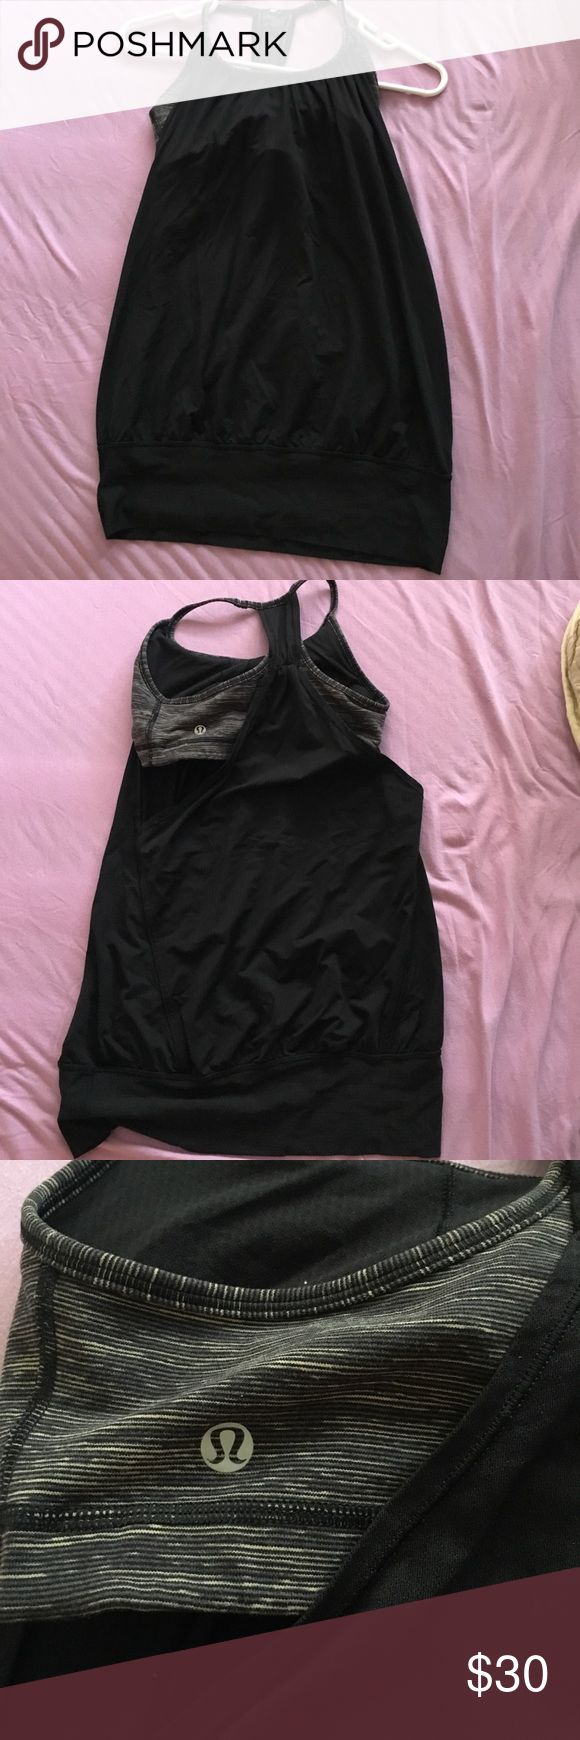 Lululemon sports bra tank grey and black Unsure of size. I have 32ddd and am petite and it fits. Probably a size 4 or 6 lululemon athletica Tops